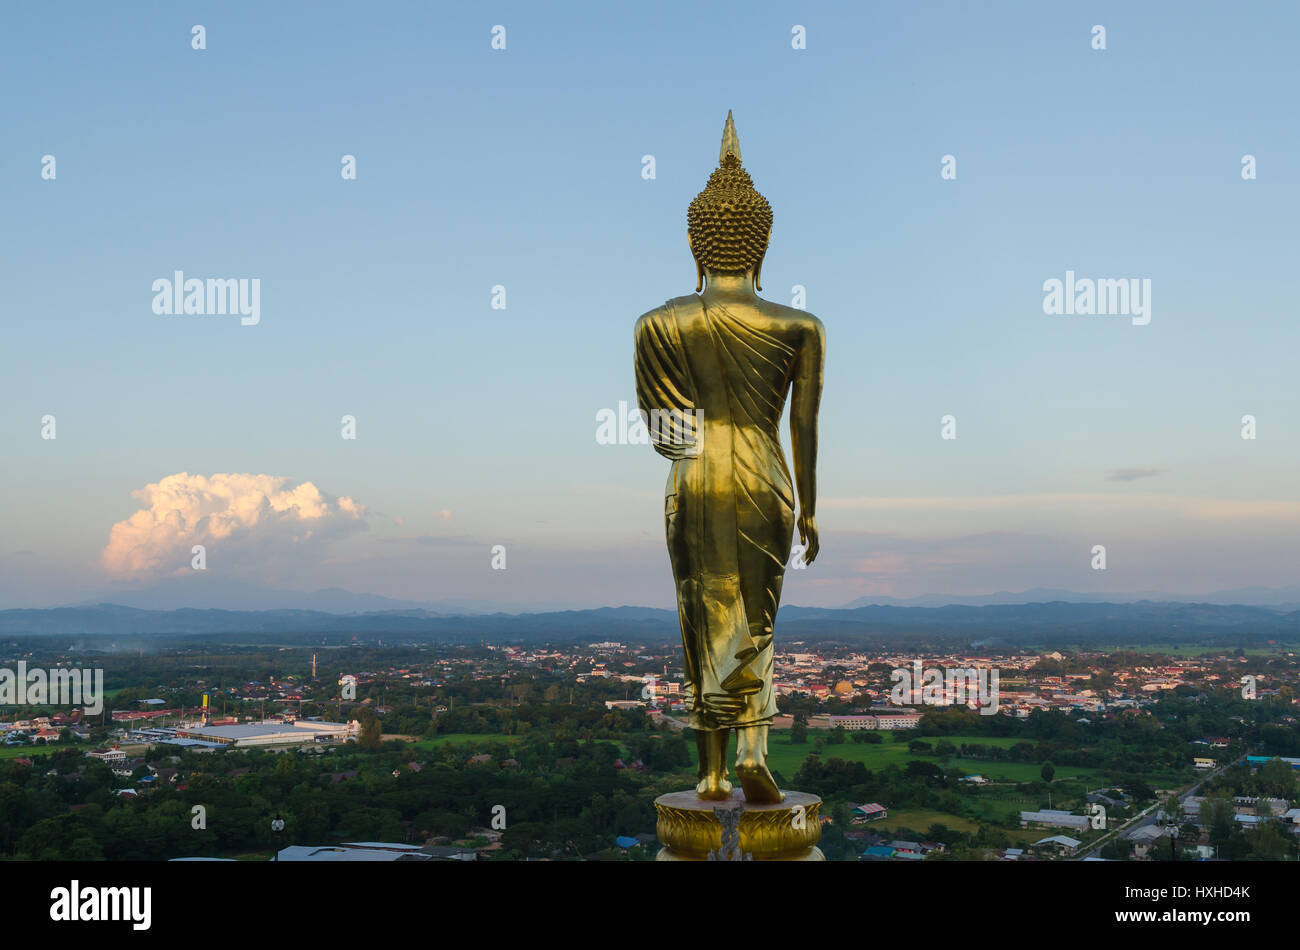 Big buddha at wat phra that khao noi temple and cityscape in nan province thailand - Stock Image